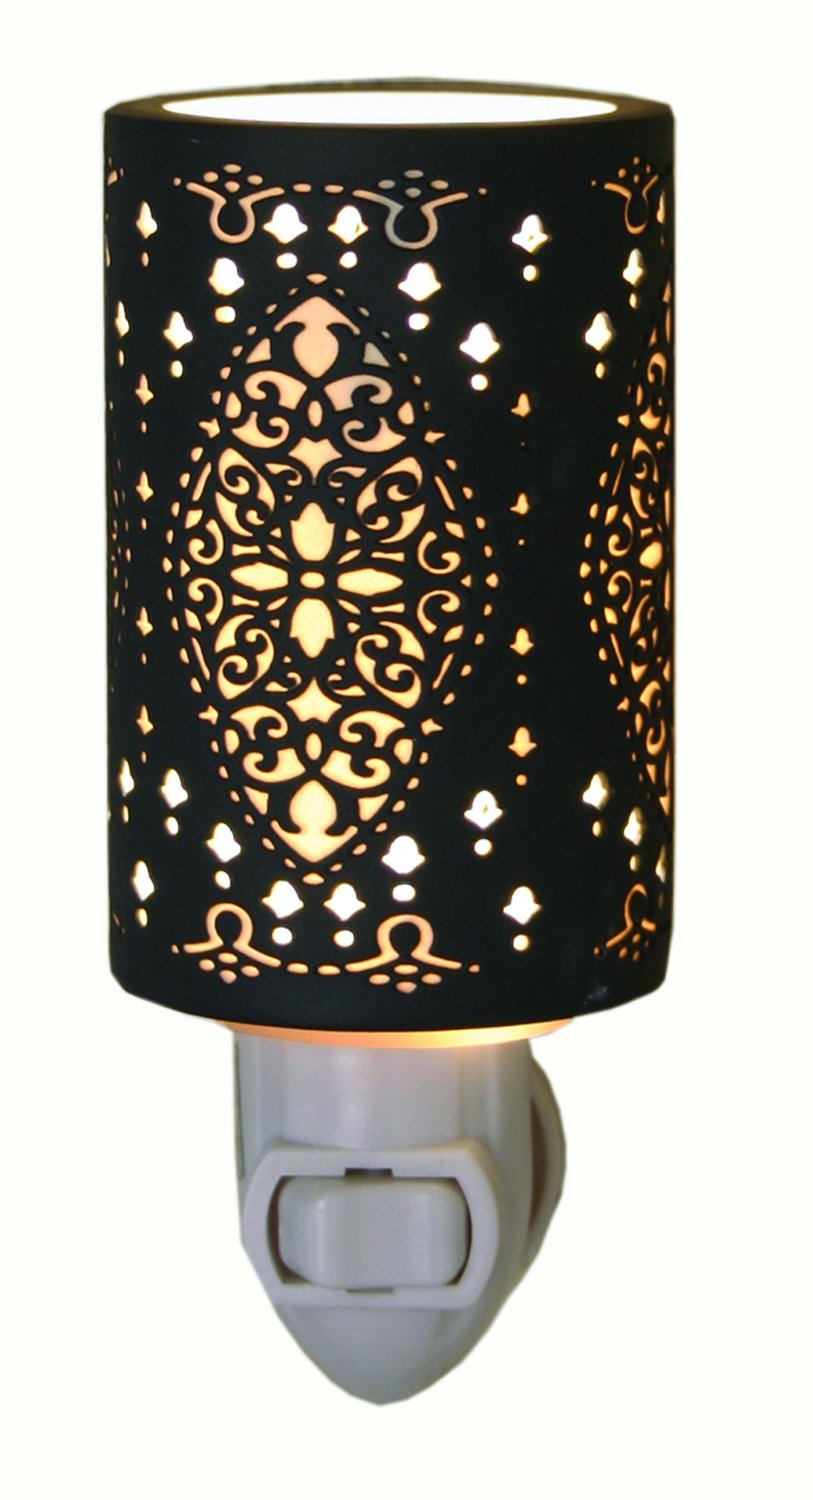 Seville - Silhouette Porcelain Night Light by The Porcelain Garden by The Porcelain Garden